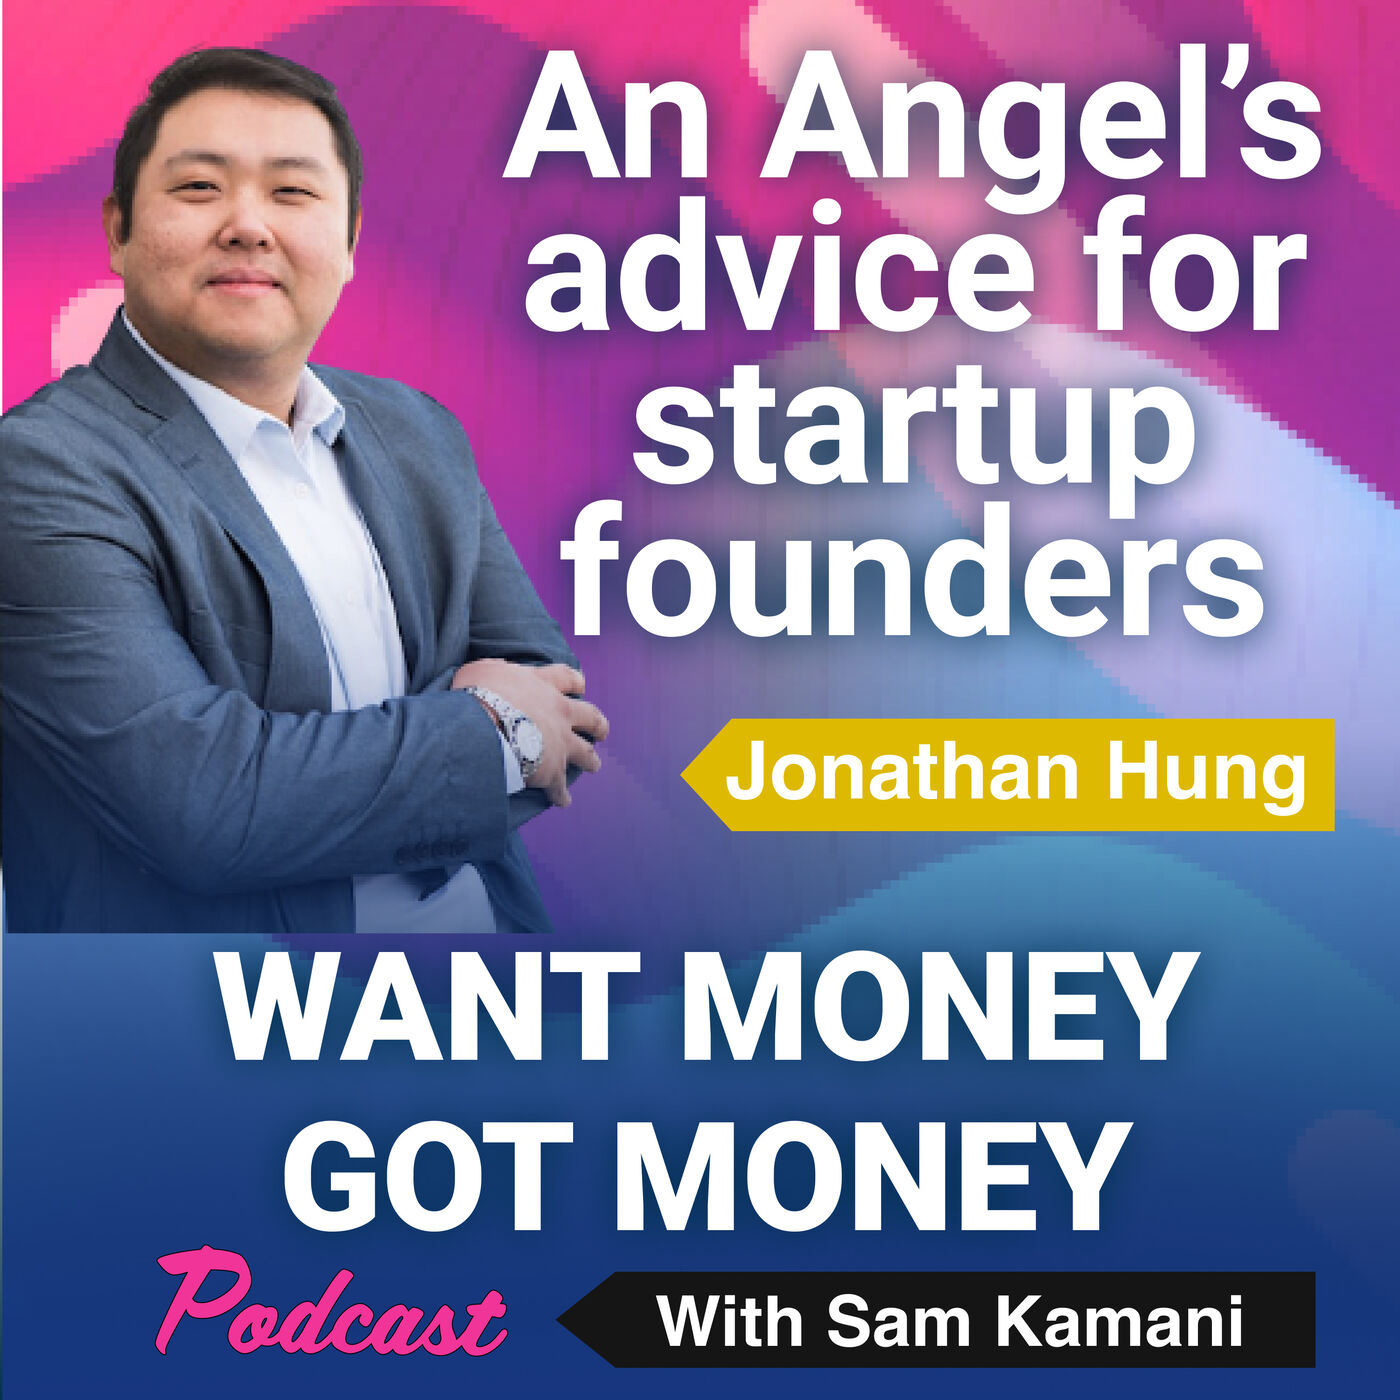 30: An Angel Investor's advice for startup founders - Jonathan Hung